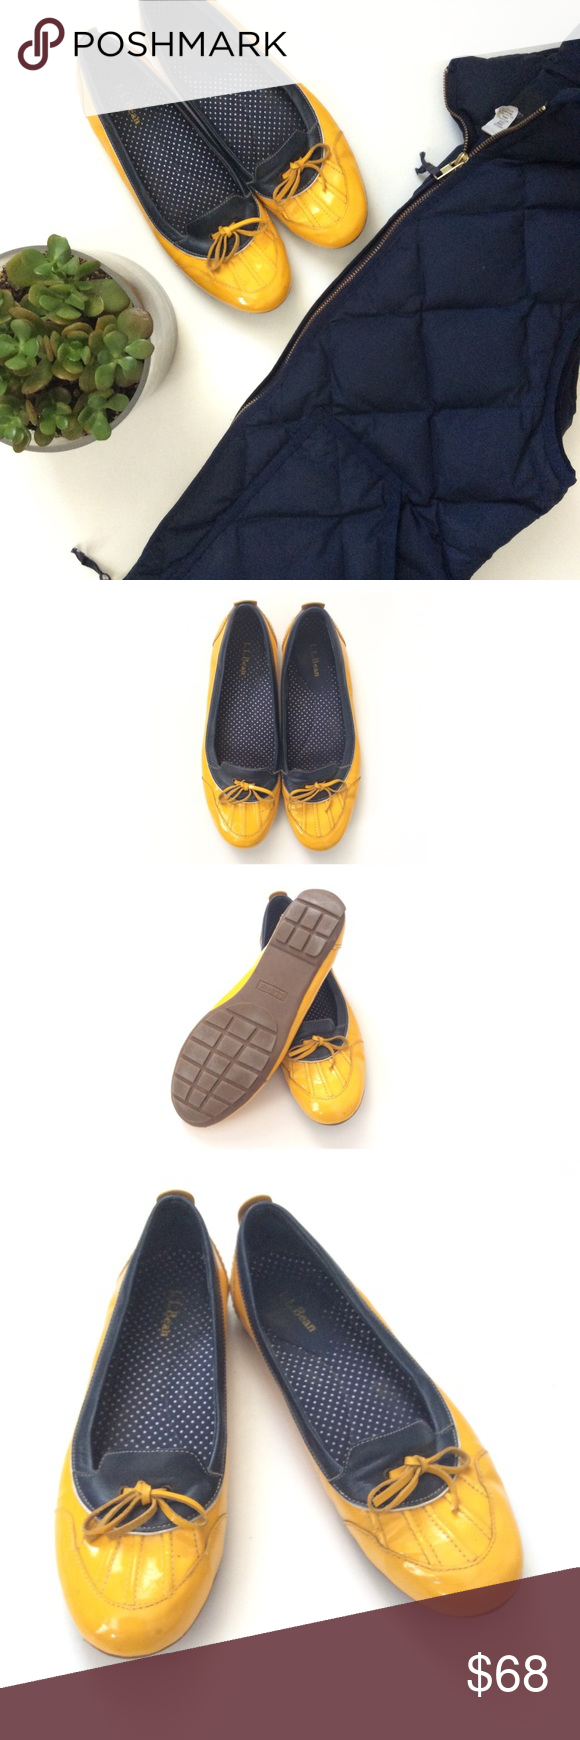 🆕{Listing} L.L.Bean Short Yellow Duckboots Make a splash with these bright yellow duckboots. Cute Navy blue and white polka dots inside. Perfect for Spring rainy days. In good condition. Some wear on inside, and minor scuffs on outside. L.L. Bean Shoes Winter & Rain Boots